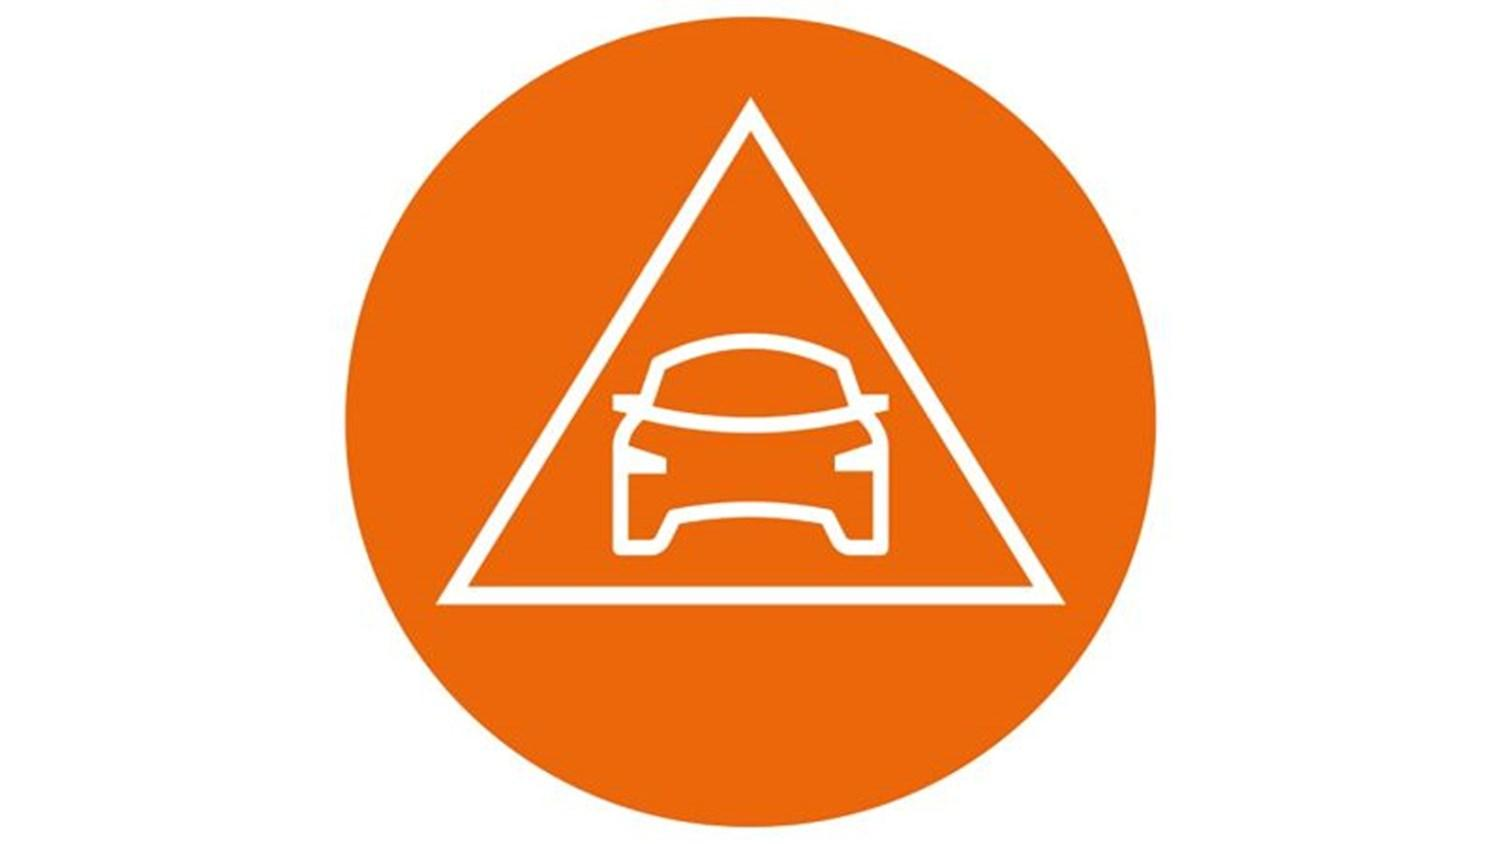 orange circle with white icon of car in a triangle